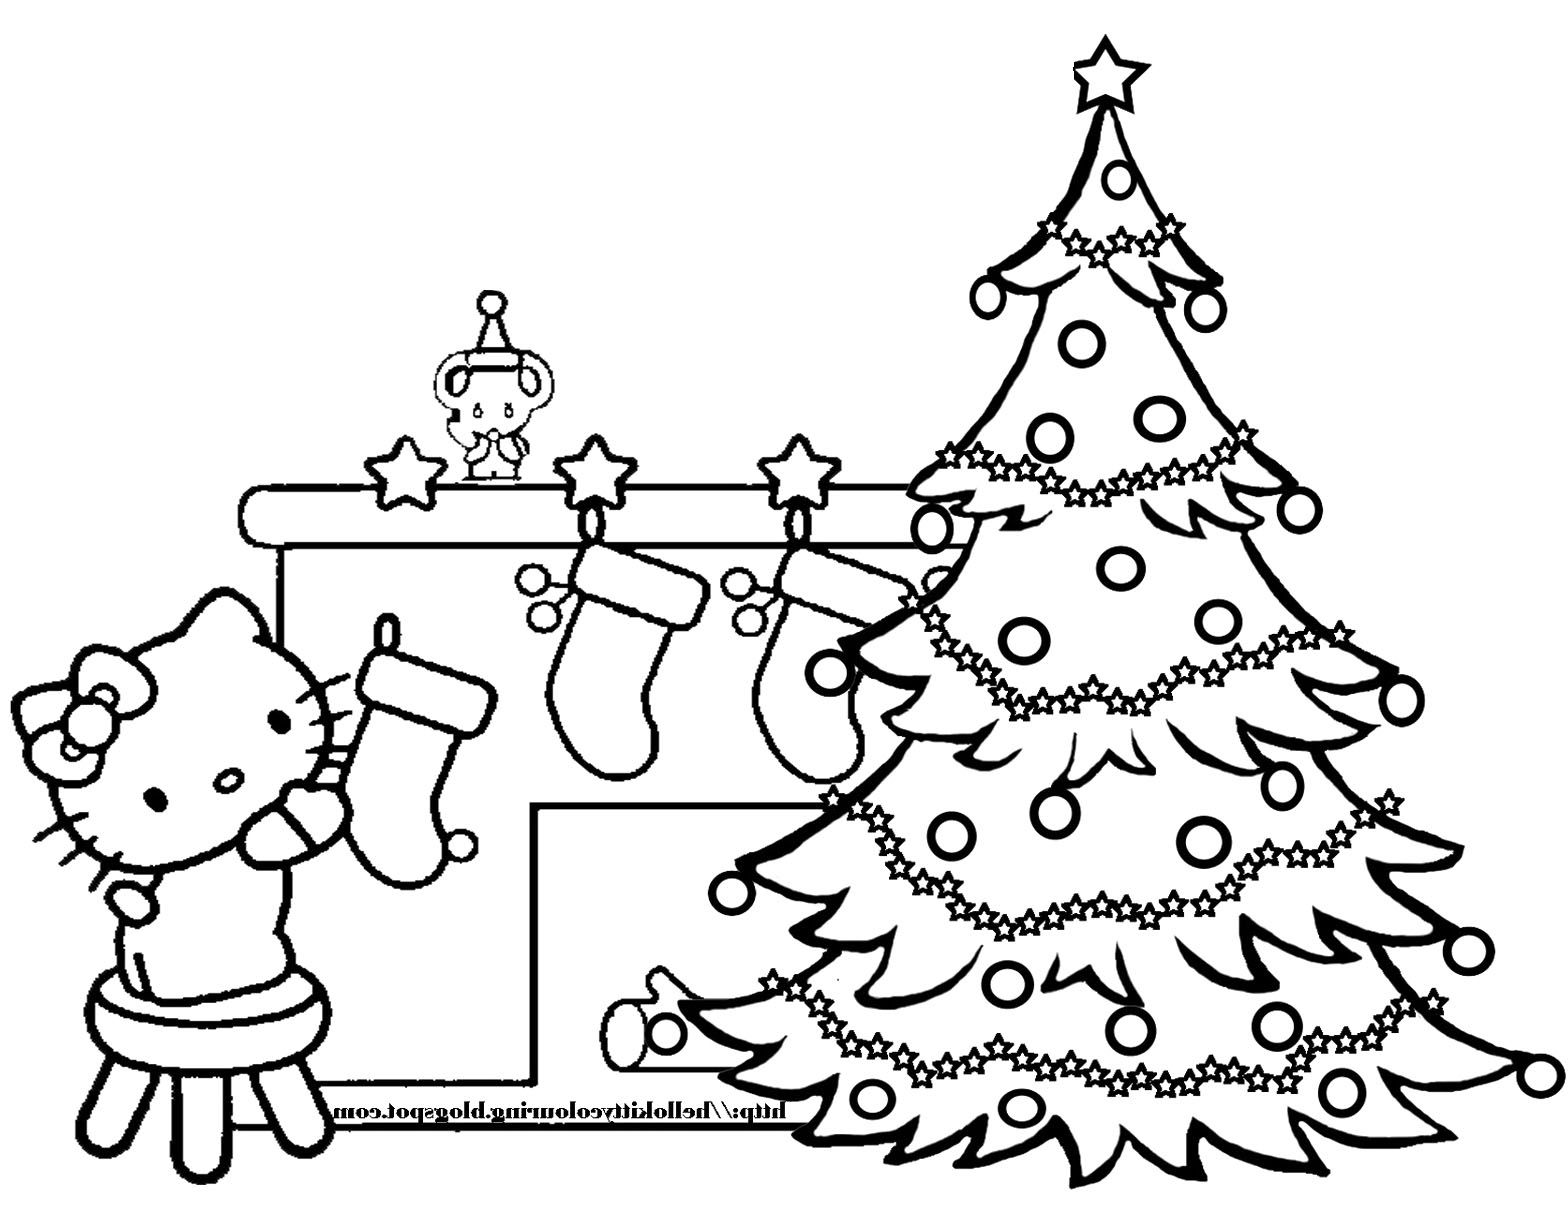 Colouring in xmas tree - Christmas Tree With Presents Coloring Pages